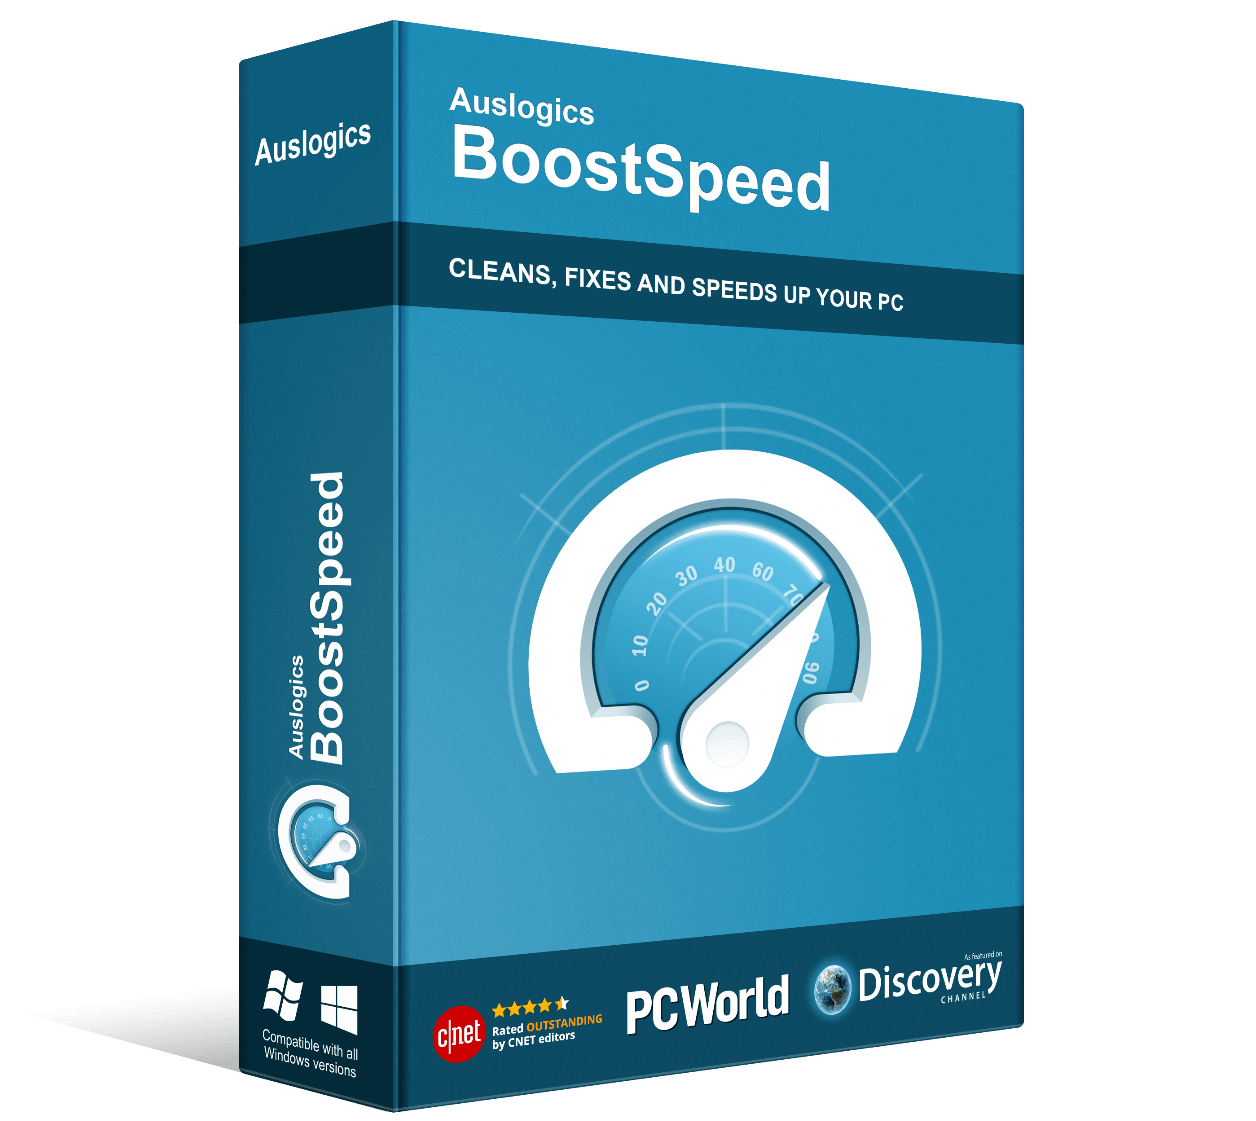 Auslogics BoostSpeed Pro 12.0.0.3 Crack With Activation Key Free Download 2021